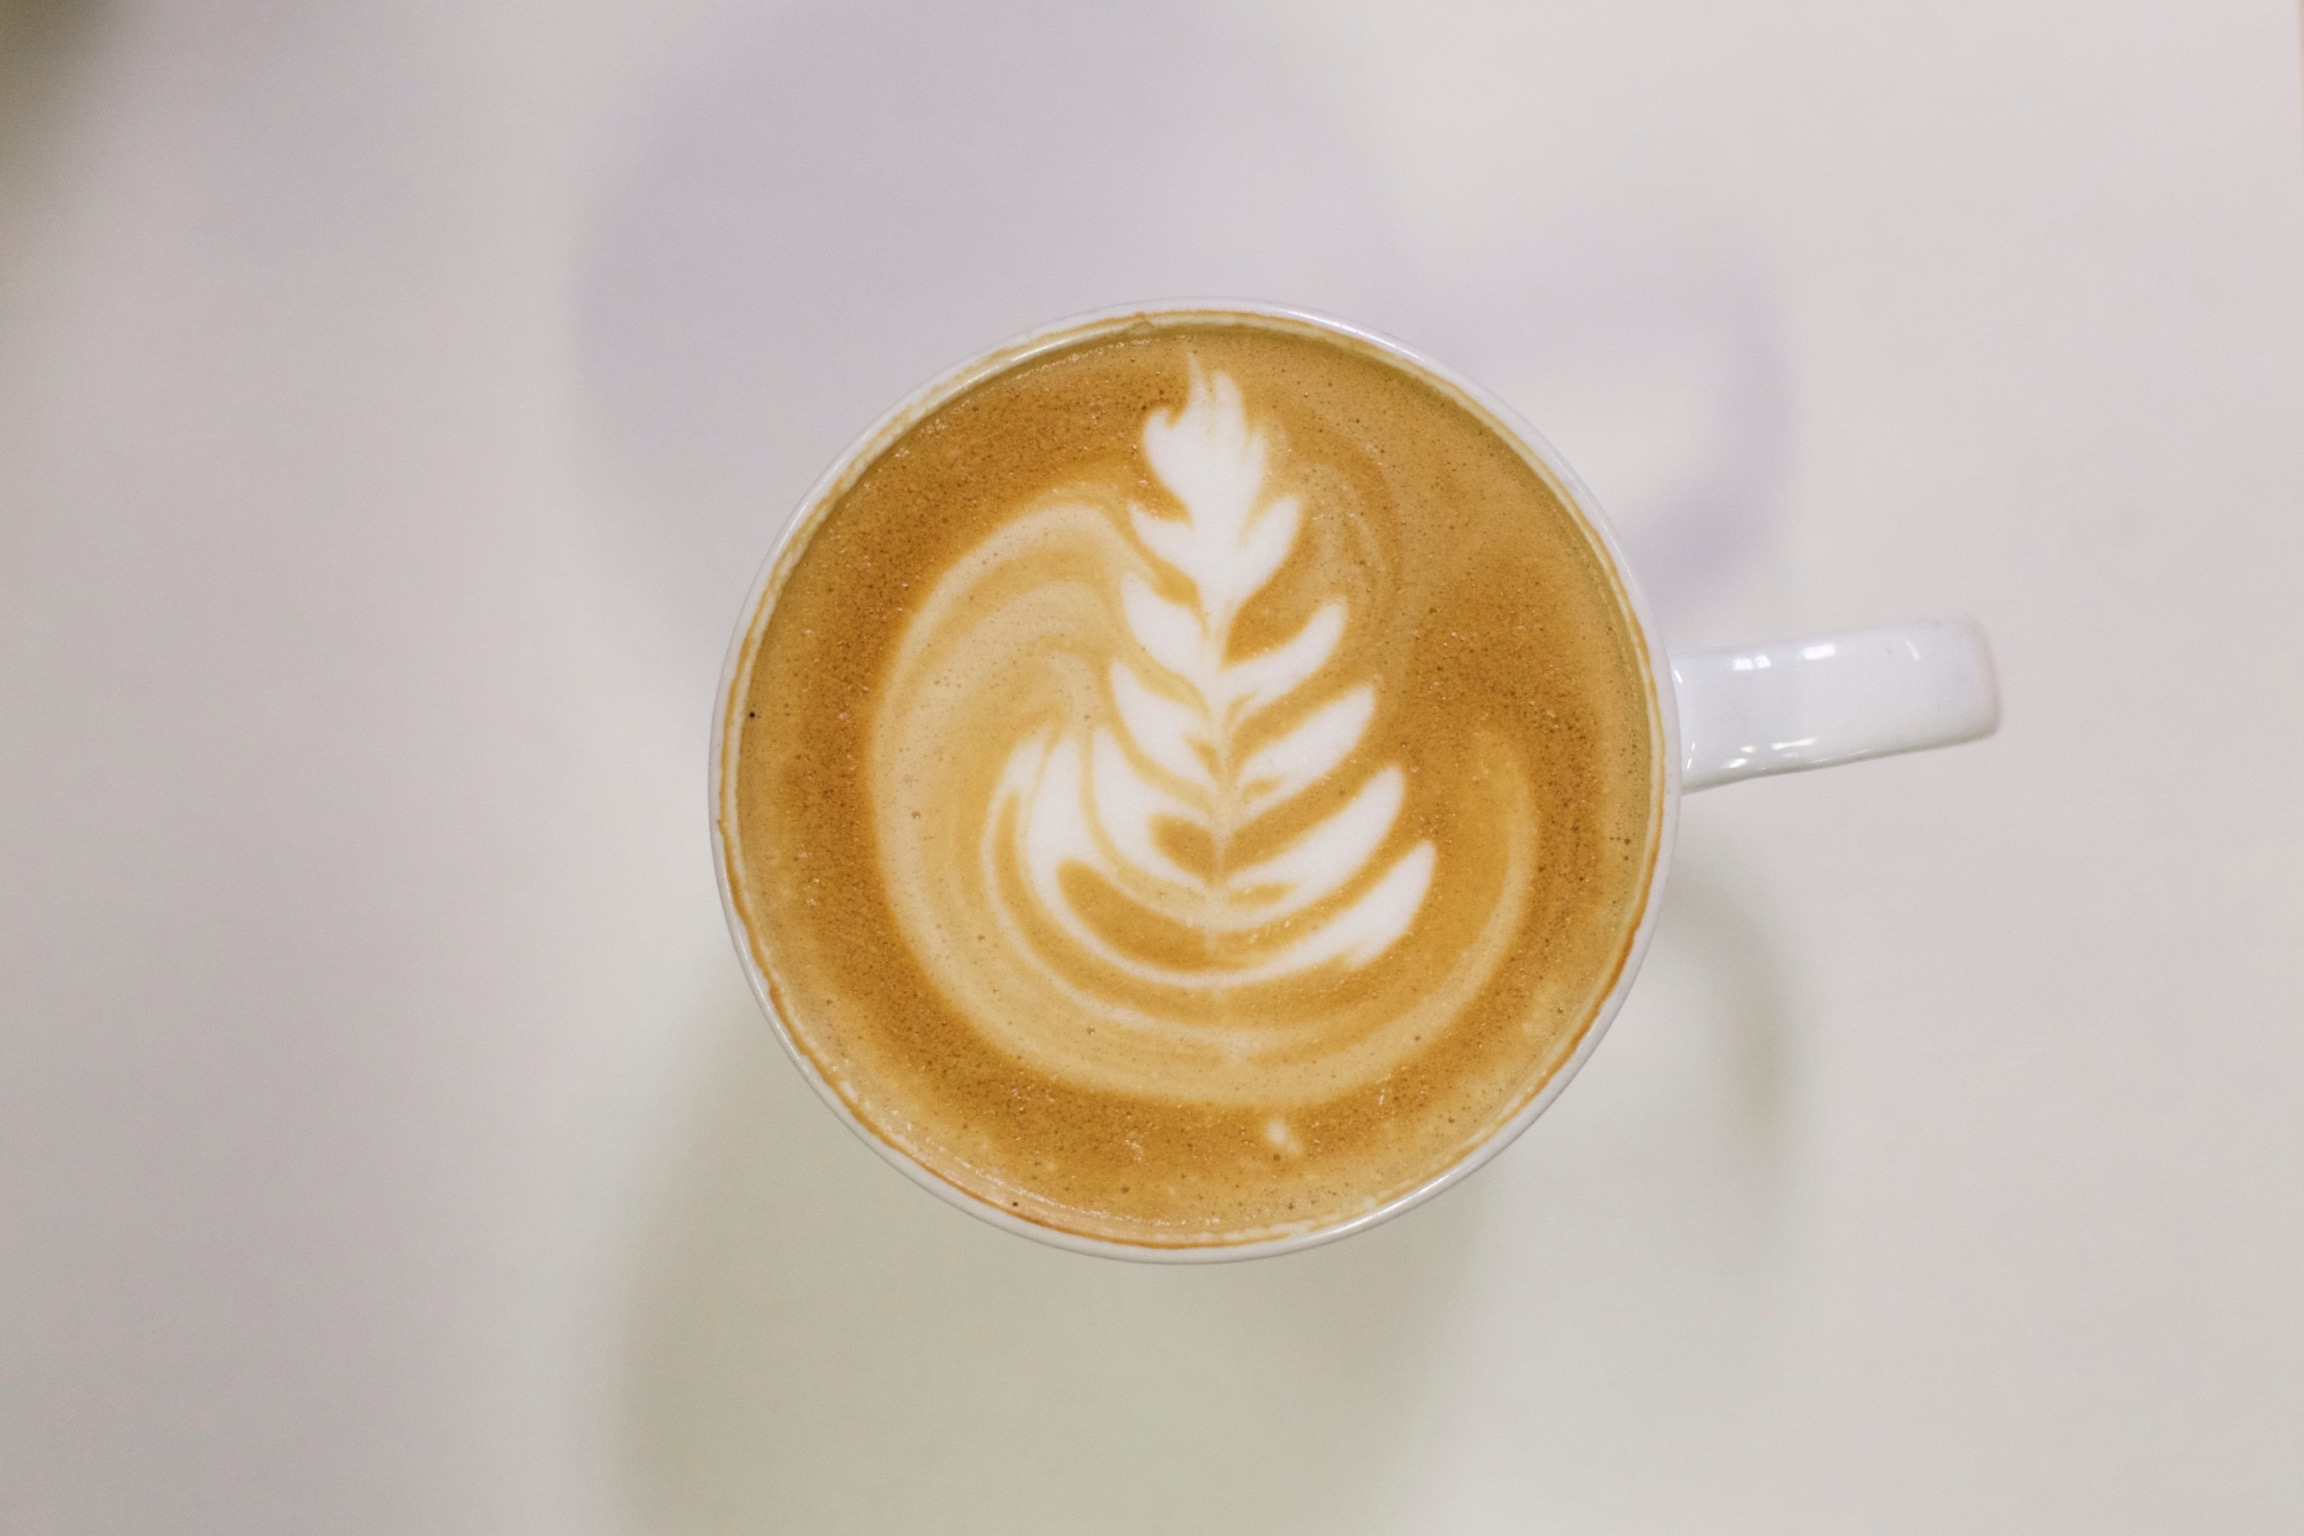 Brewed Latte